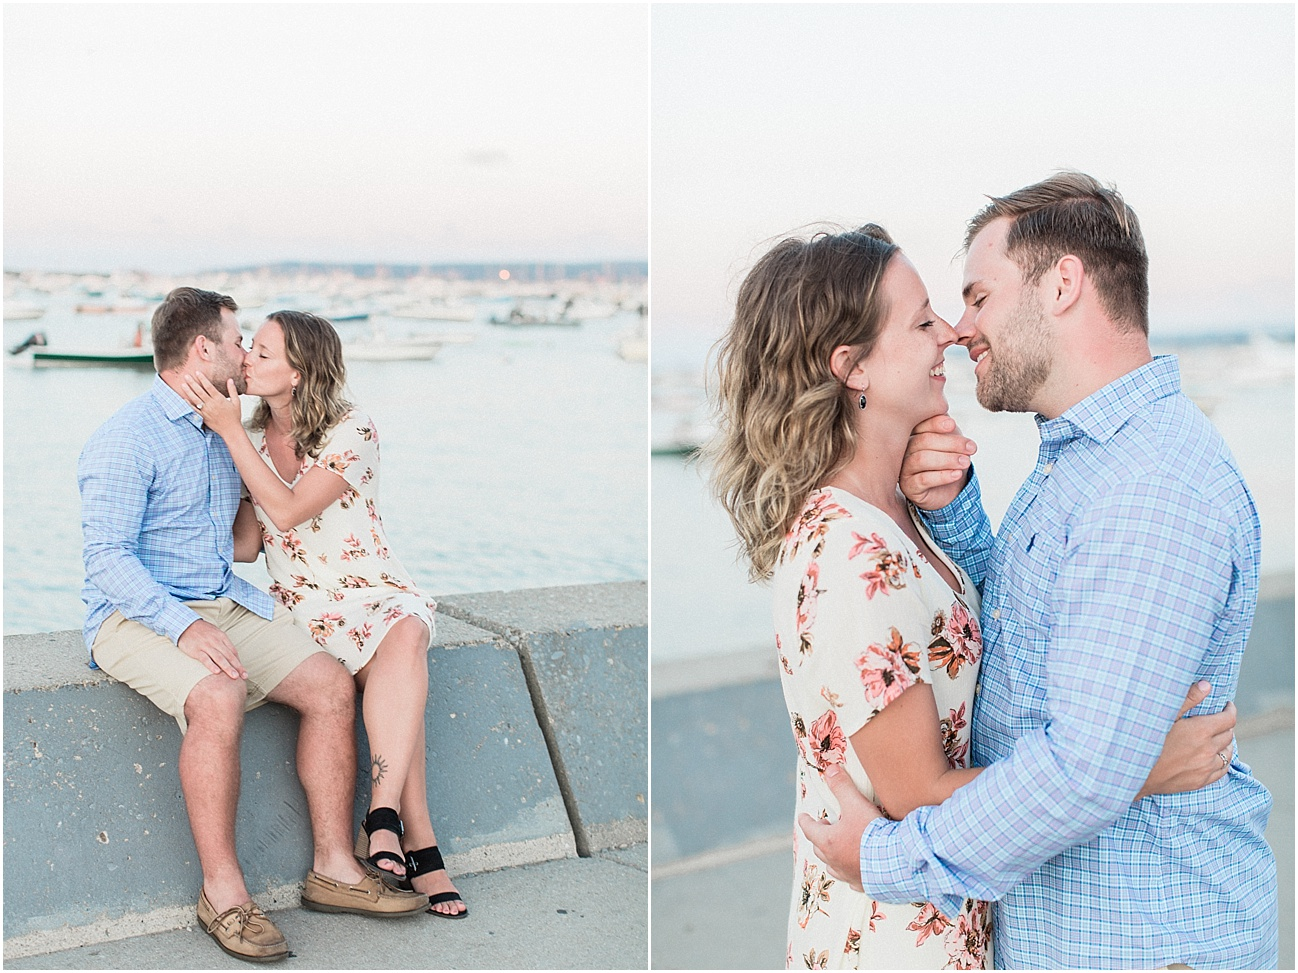 plymouth_jetty_proposal_engagement_cape_cod_boston_wedding_photographer_meredith_jane_photography_photo_0525.jpg